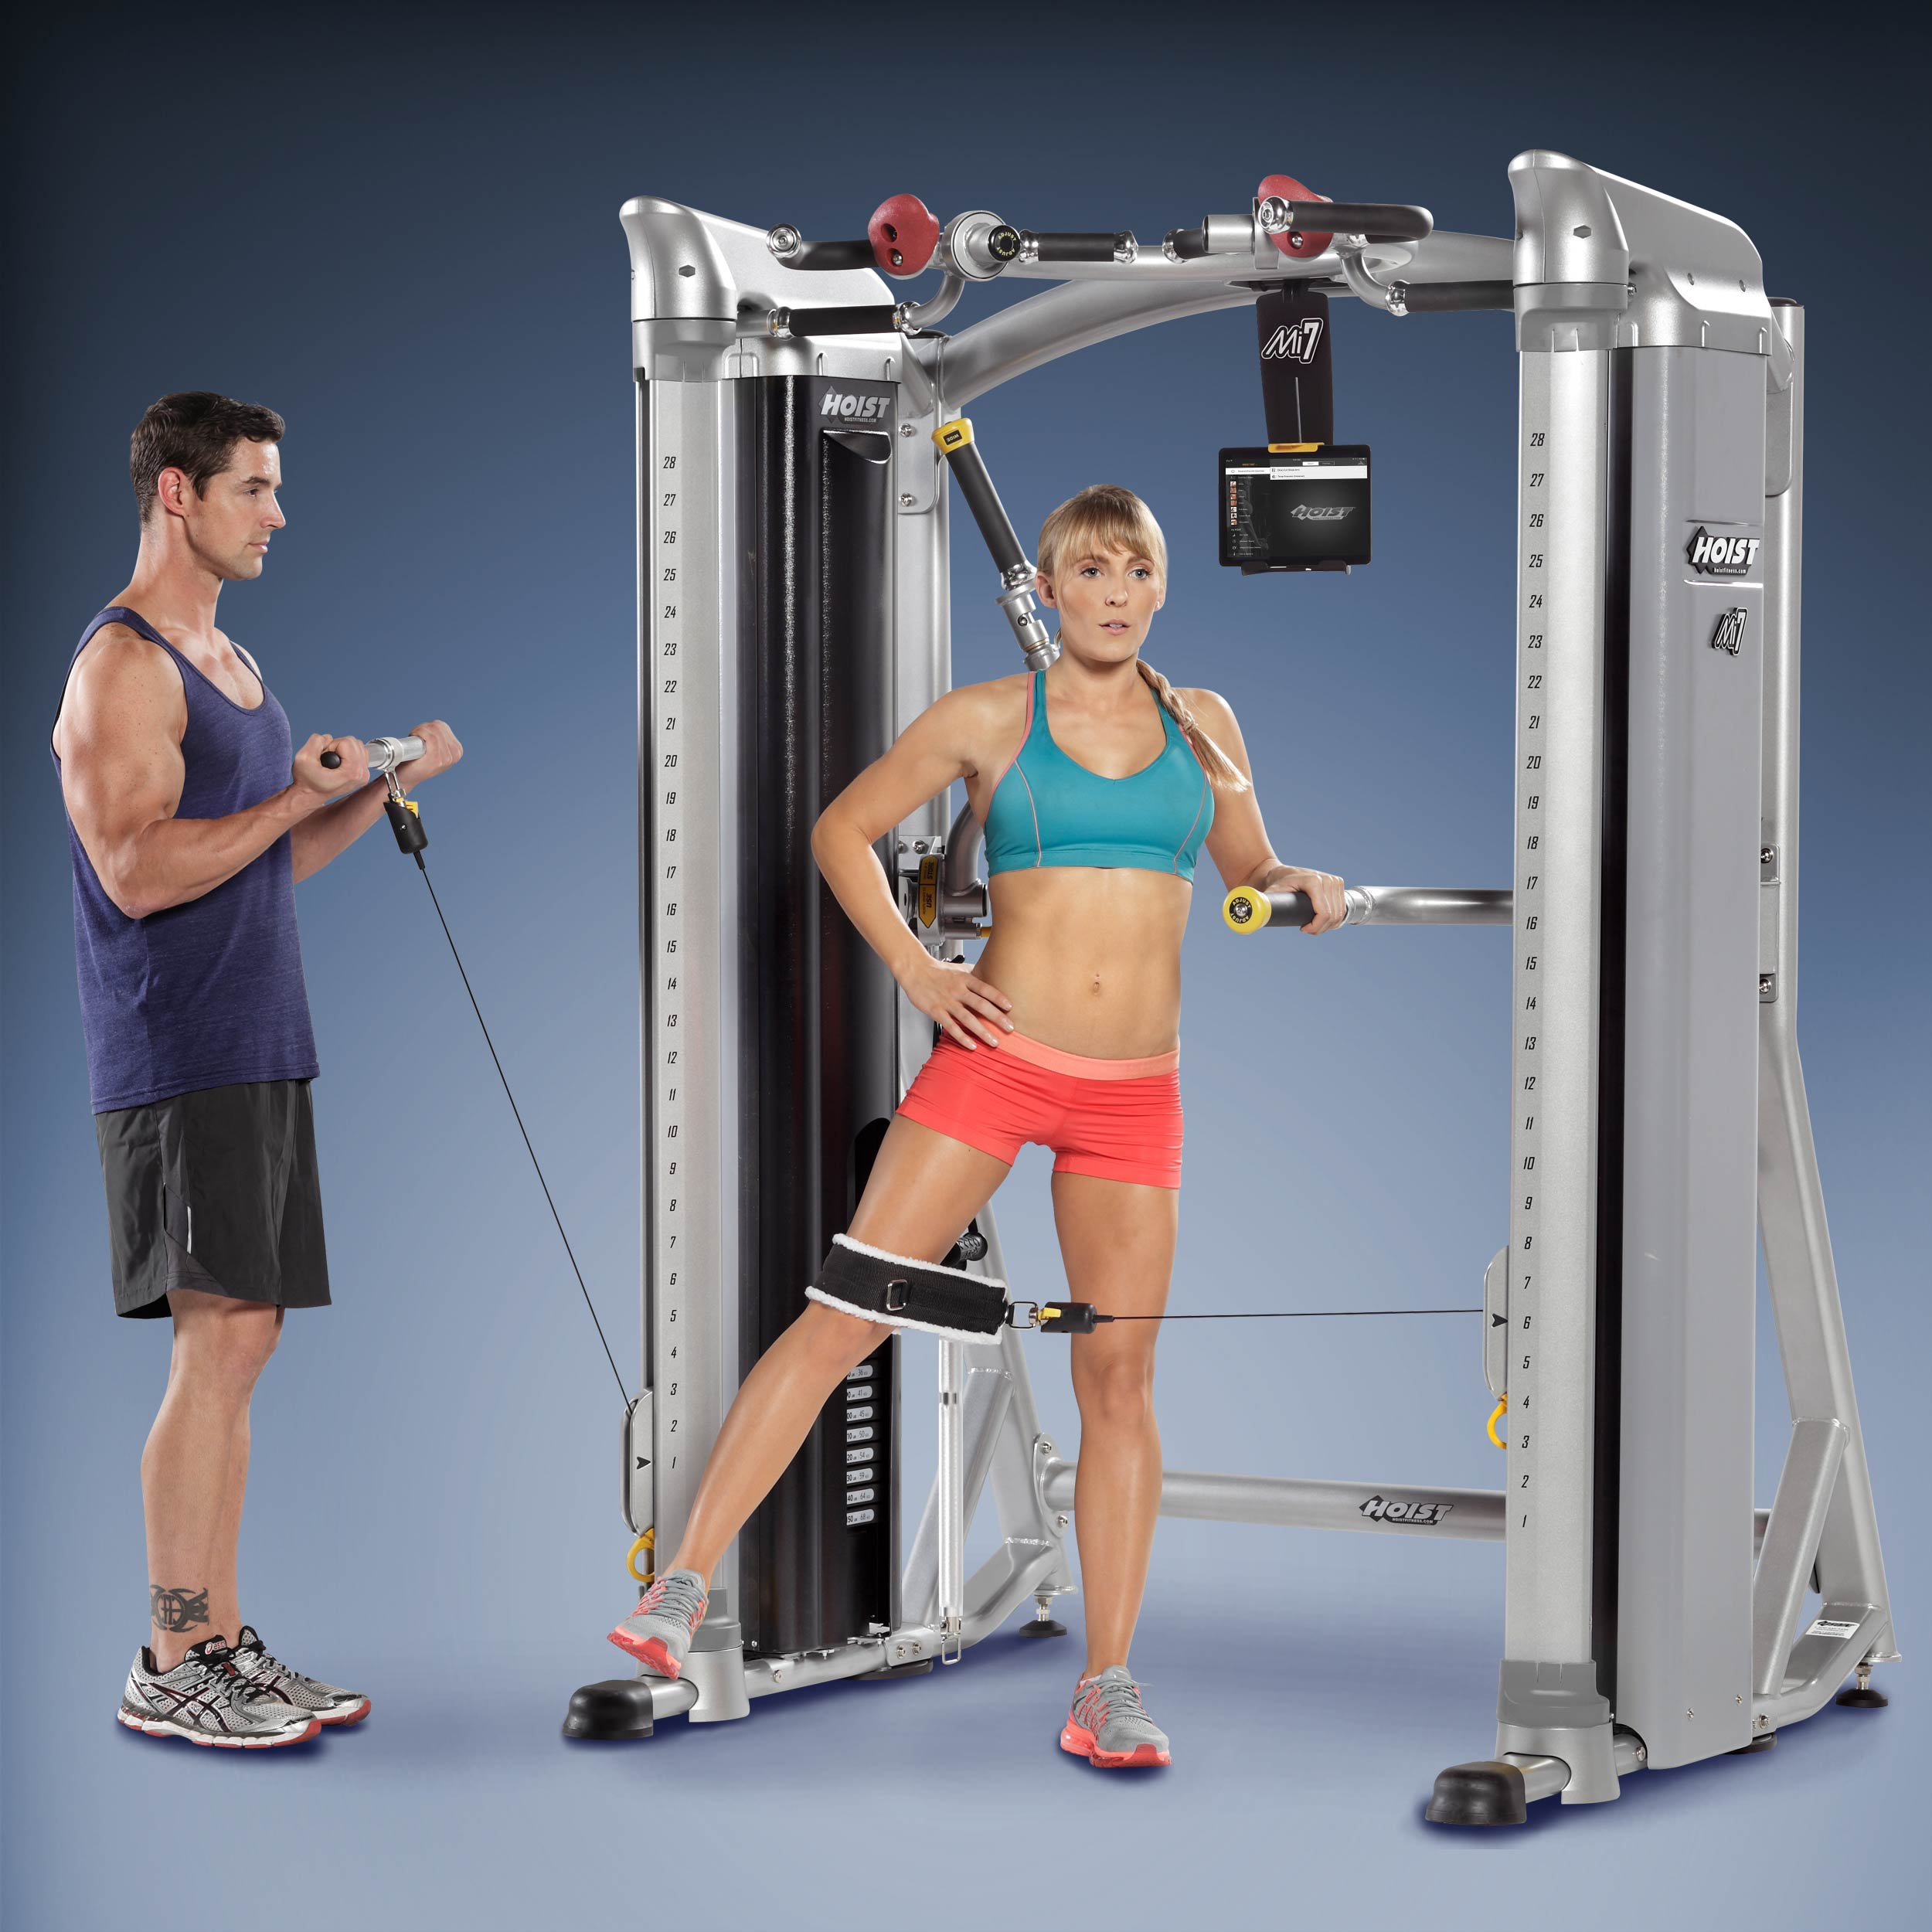 Hoist fitness strength equipment